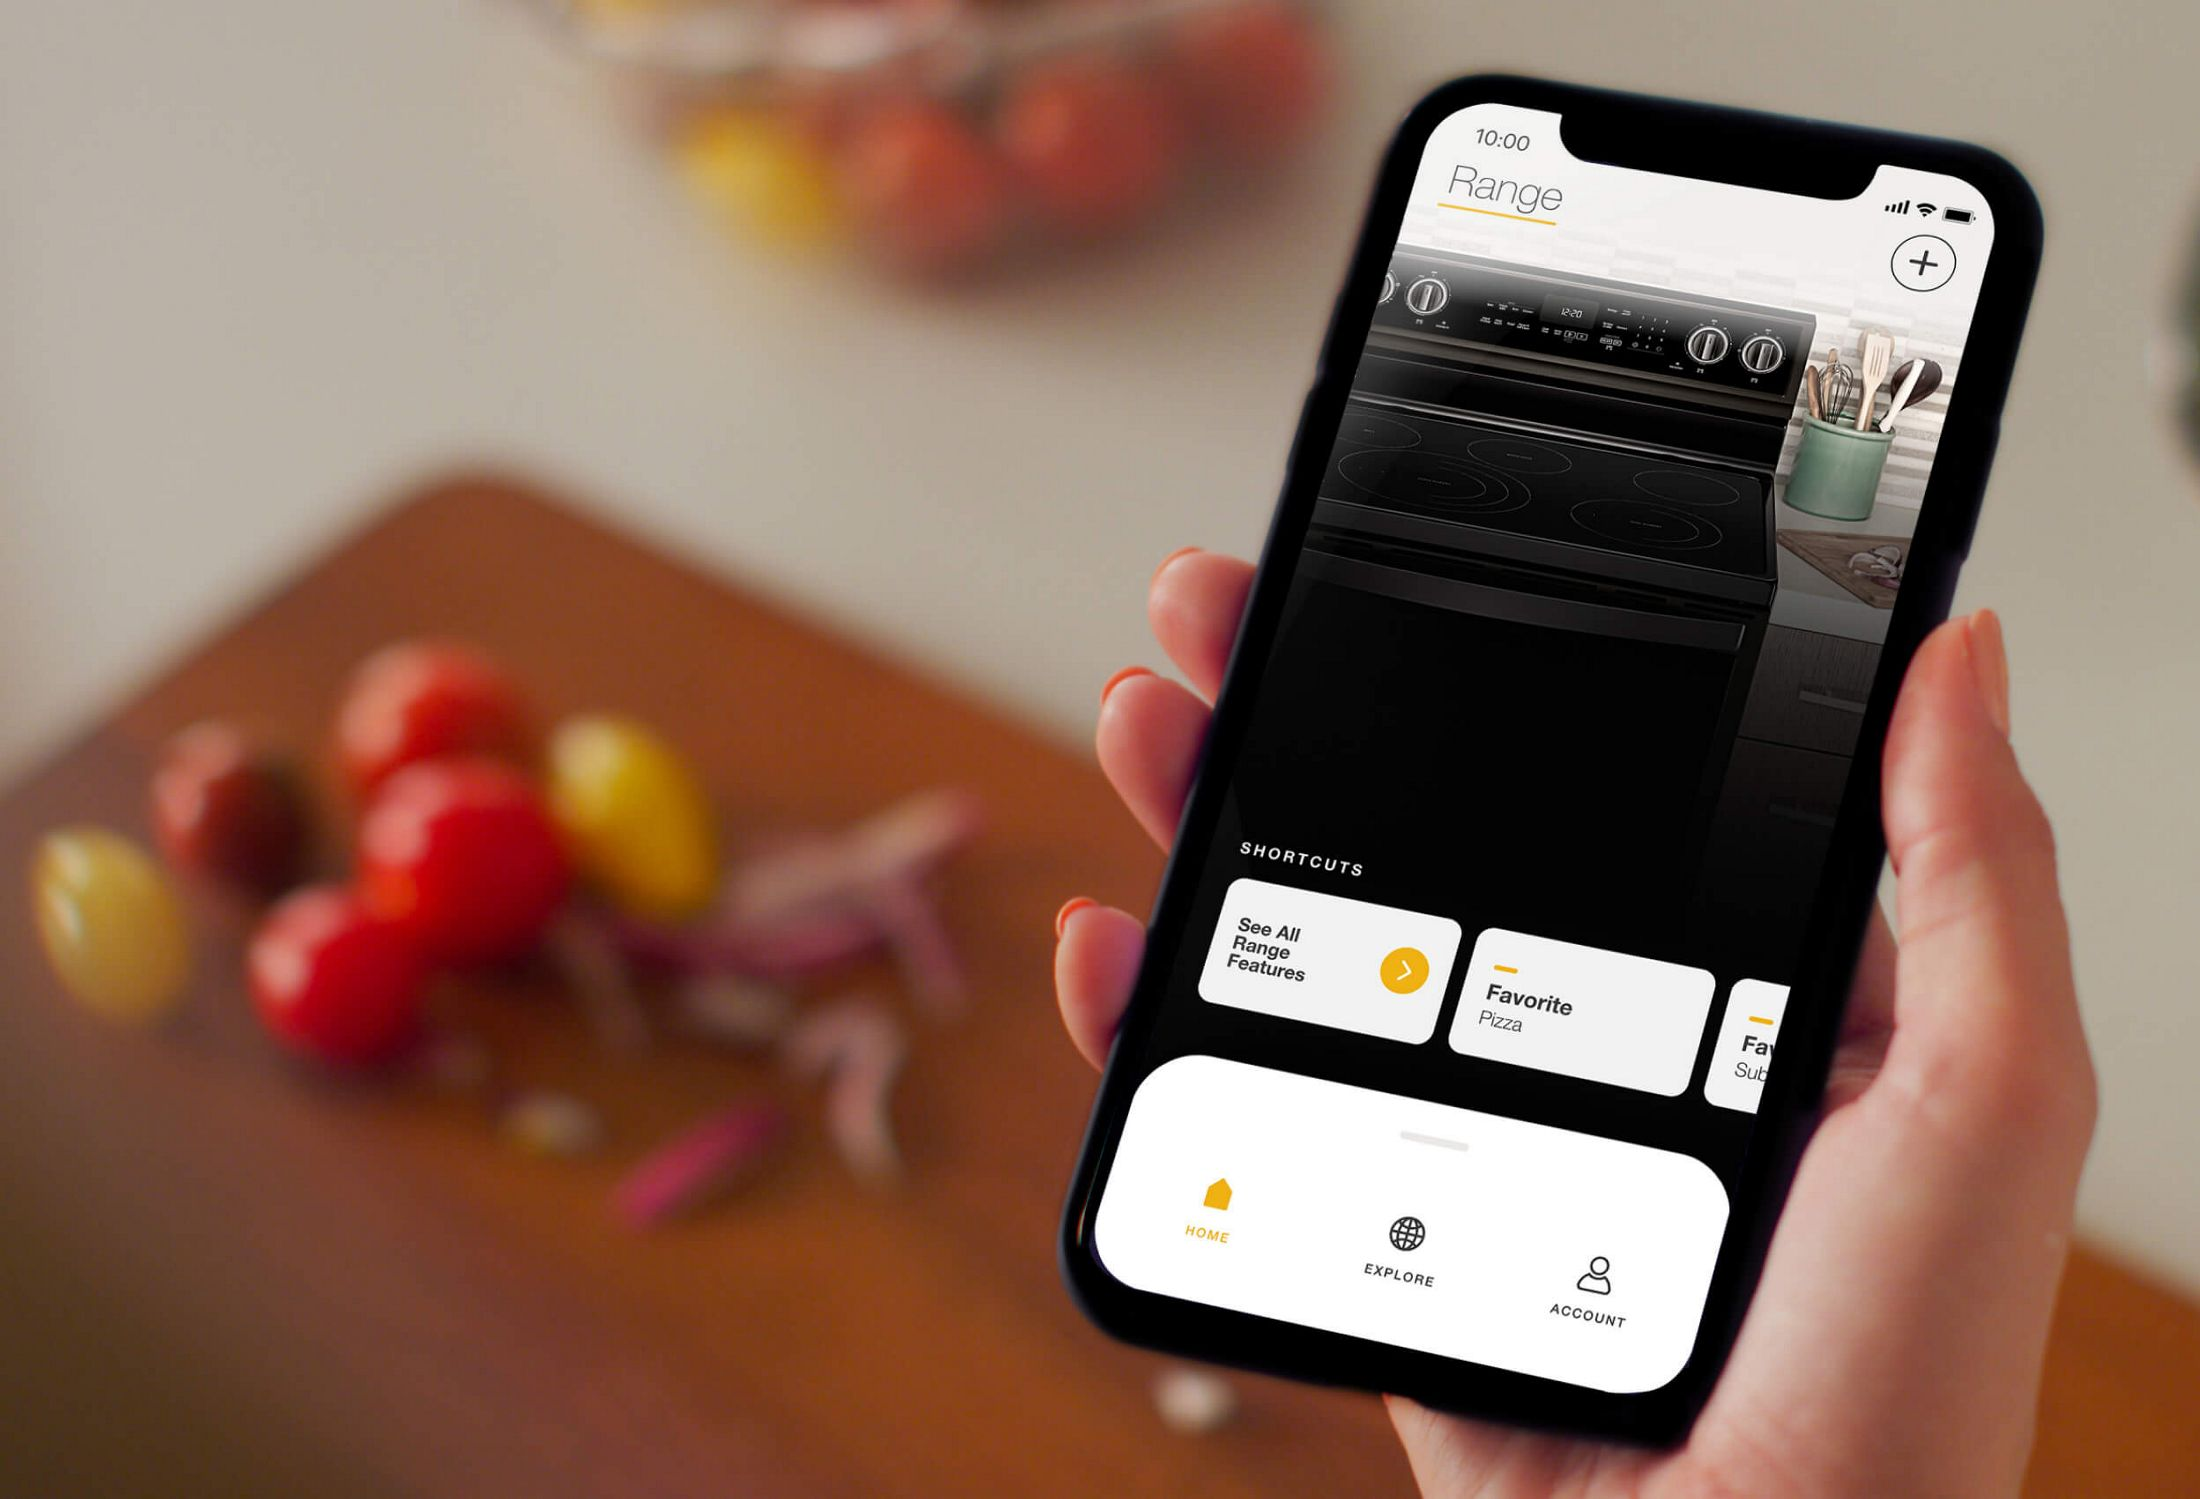 Appliances on My Home screen in the Whirlpool® app